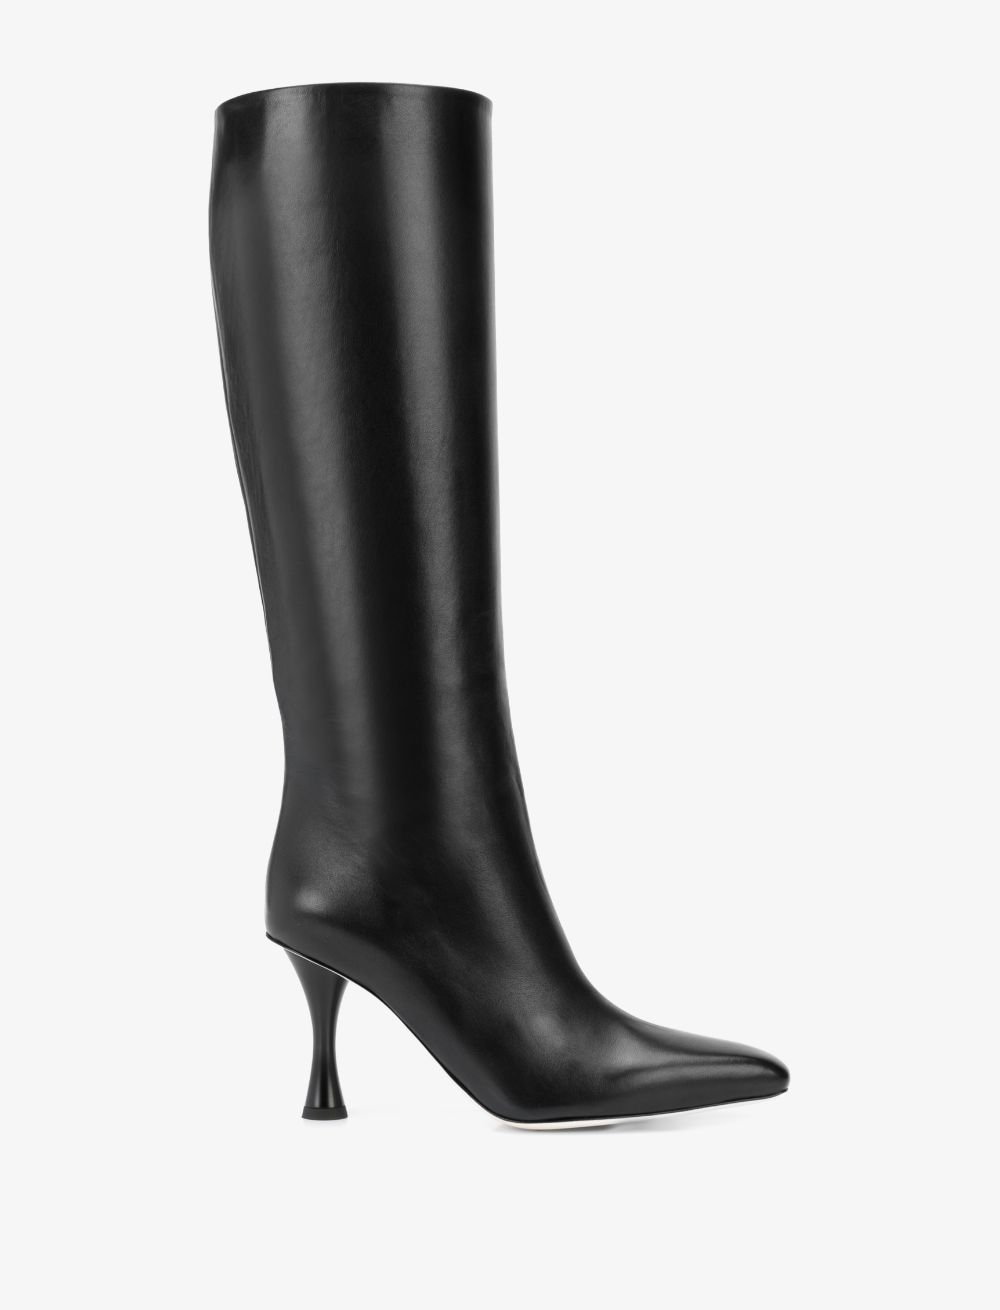 999 black Bow Tie Tall Boots from Proenza Schouler.